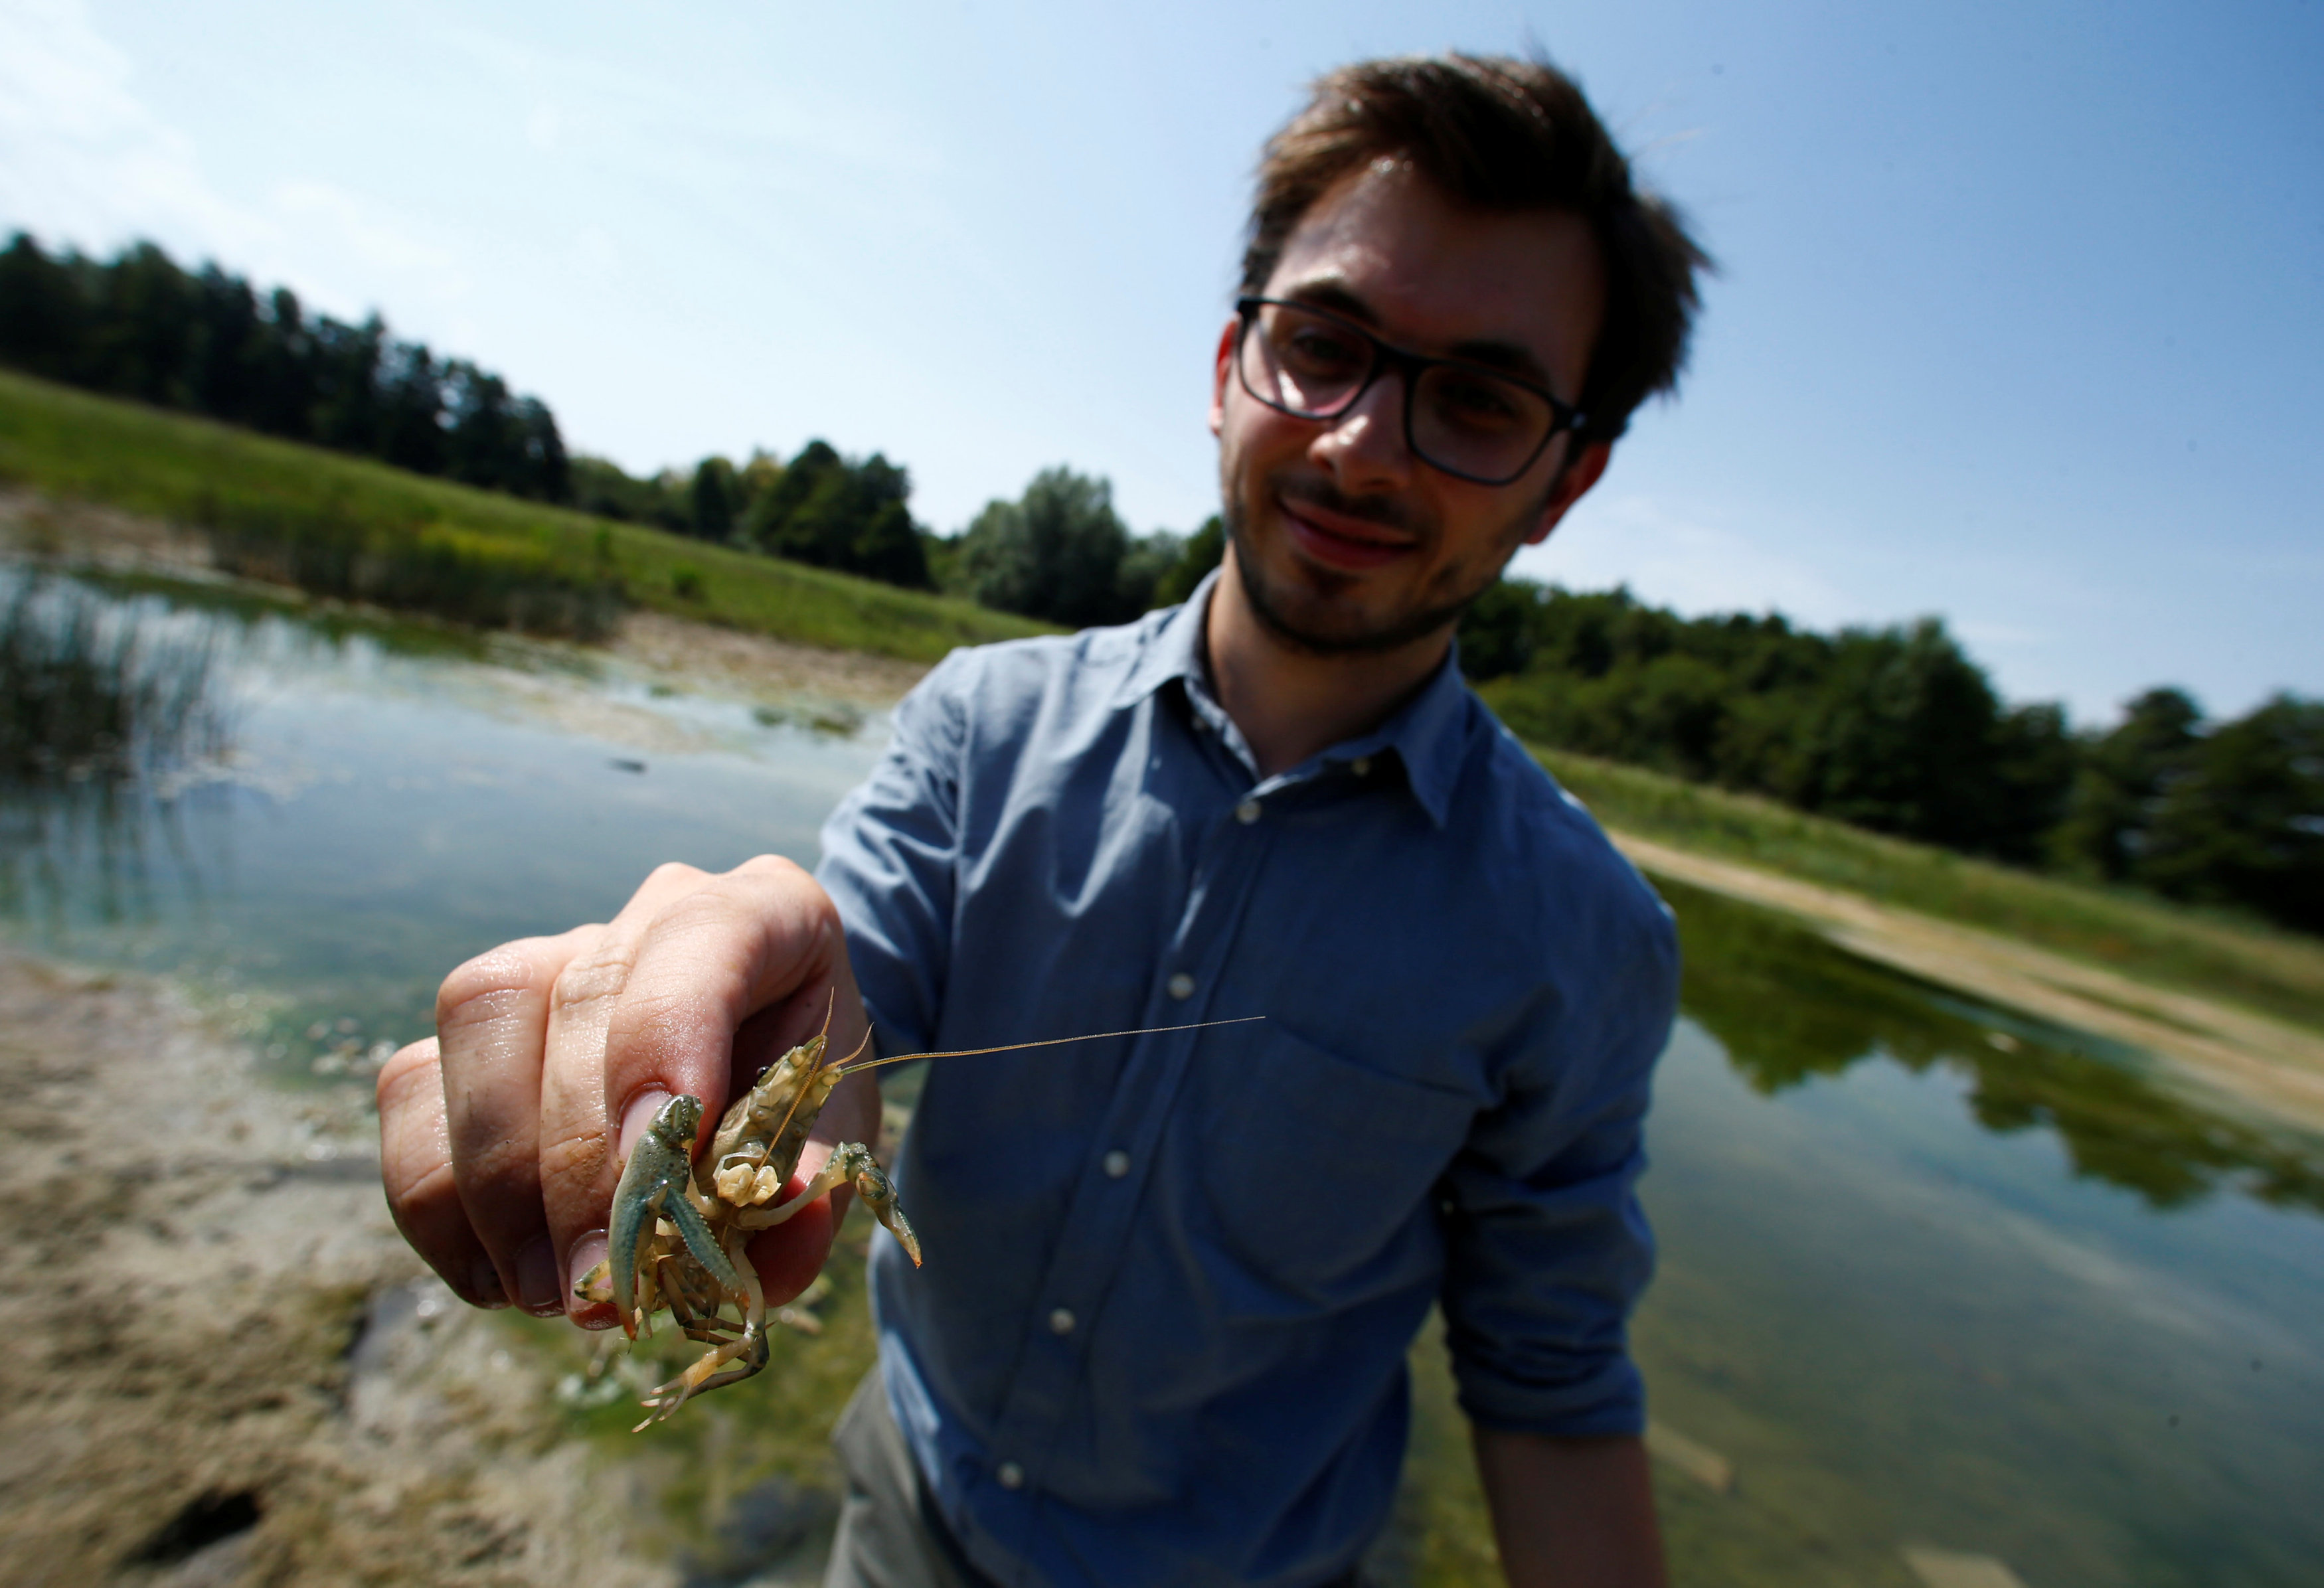 Stephan of the Karlsruhe University of Education holds calico crayfish (Orconectes immunis) in Rheinstetten